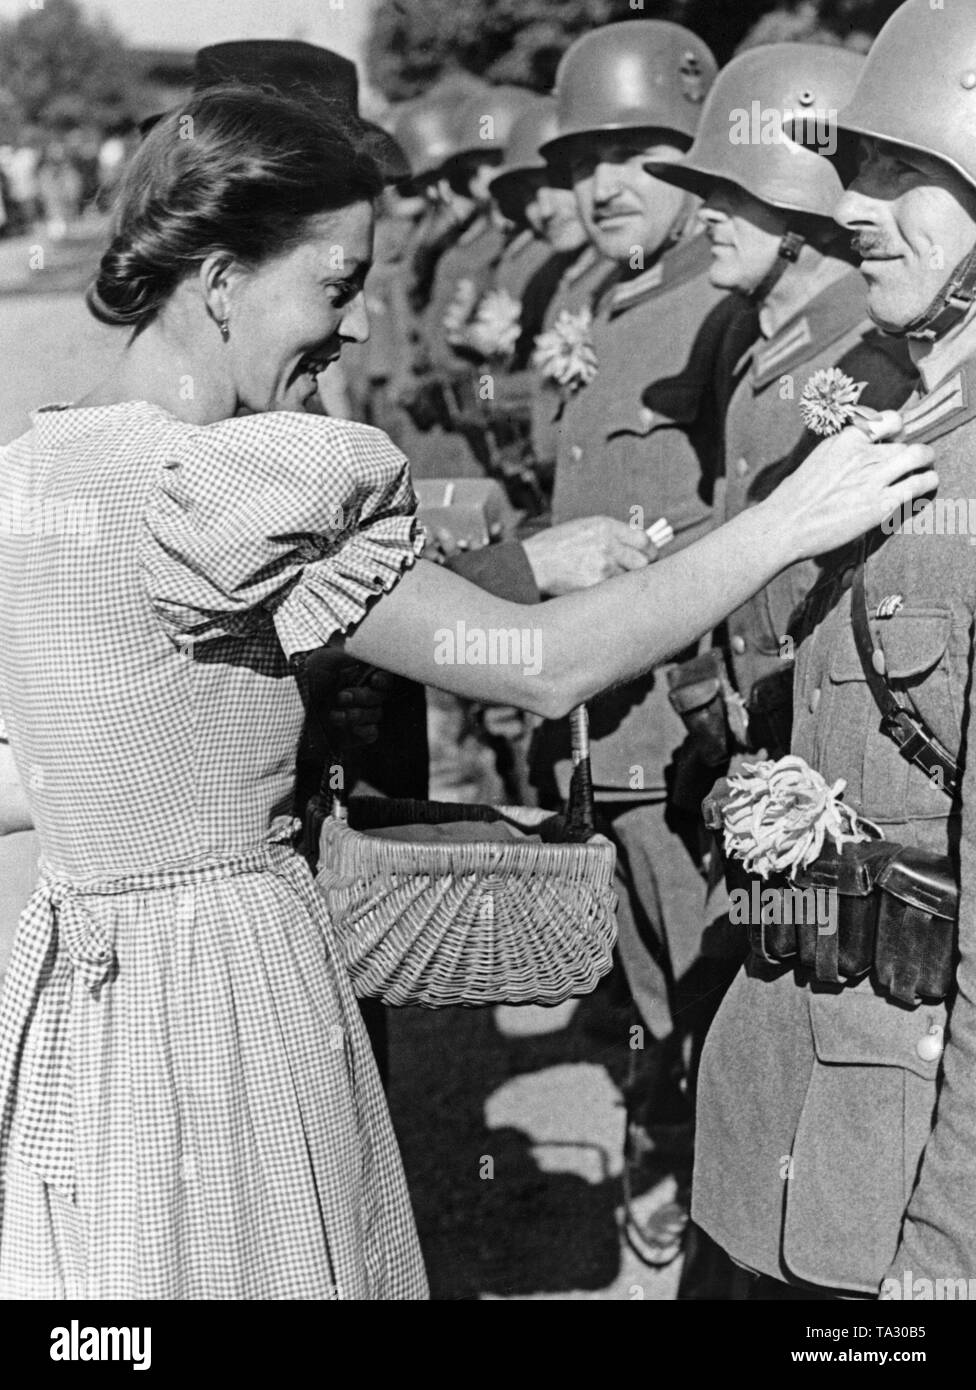 A woman sticks flowers onto the German soldiers' collar in the village of Oberdorf (today Horni Ves) on October 7, 1938 (zone IV). - Stock Image